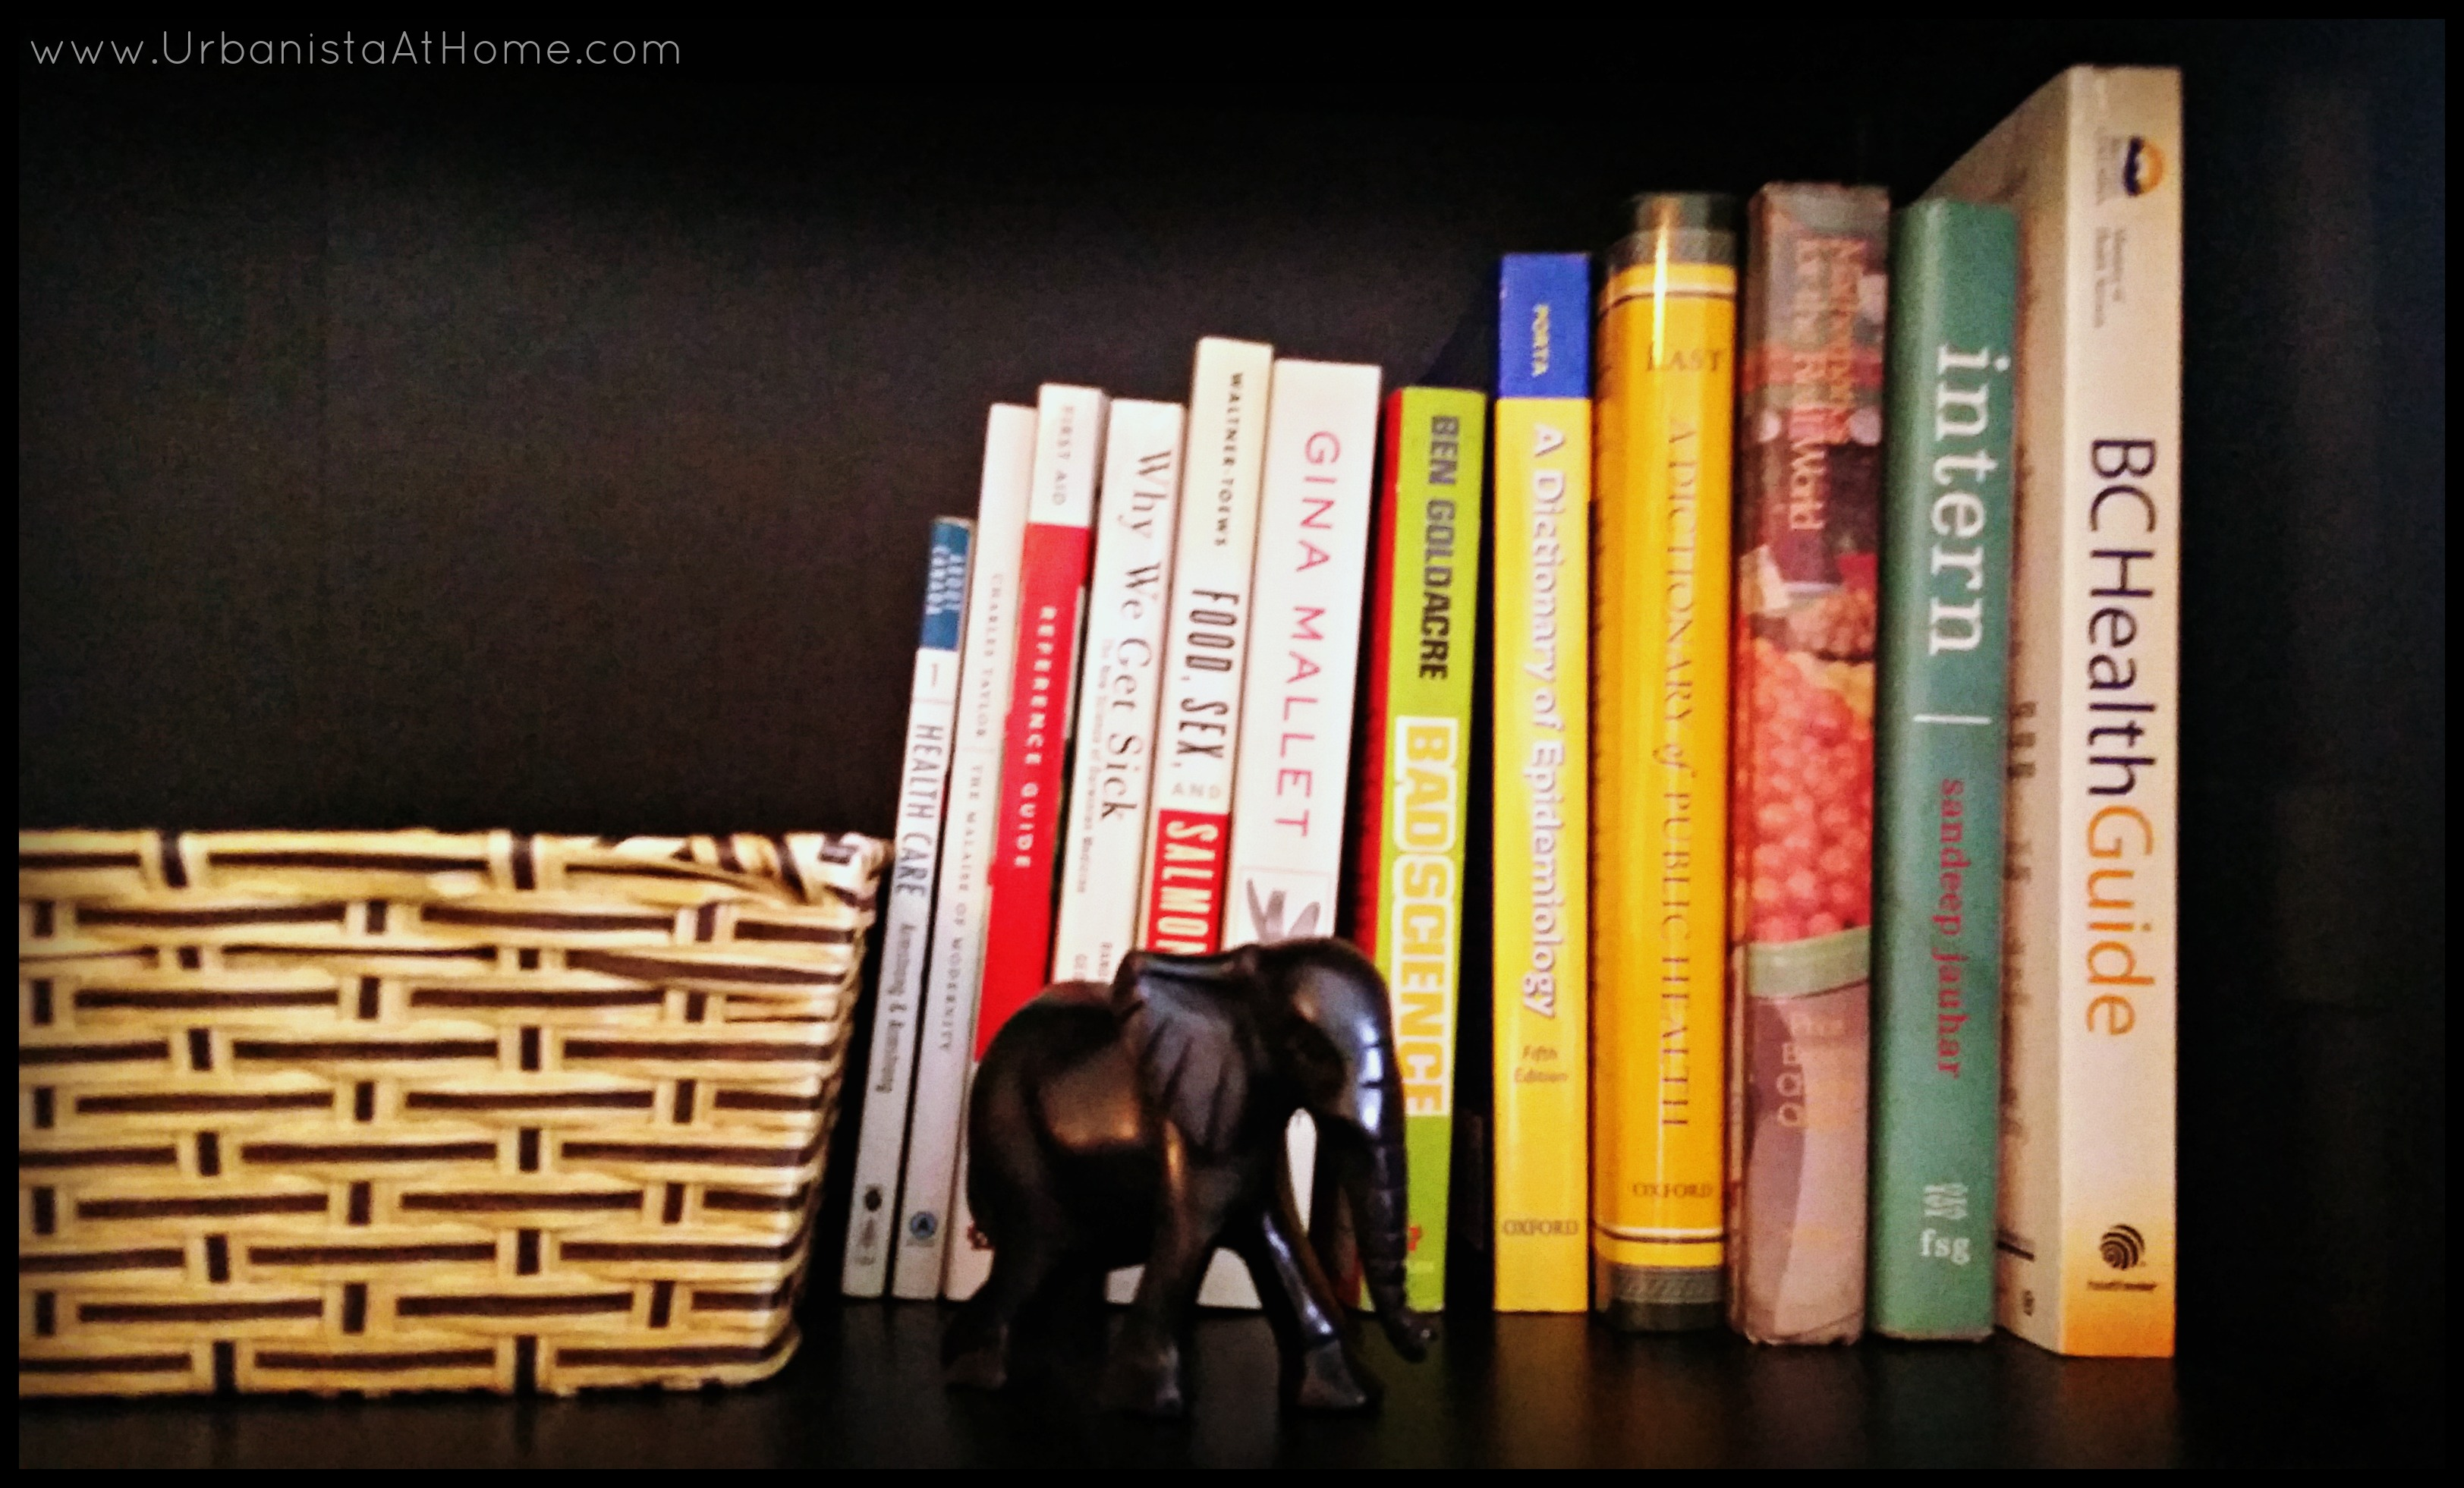 UrbanistaAtHome- Curating Your Bookcase - Health Shelf